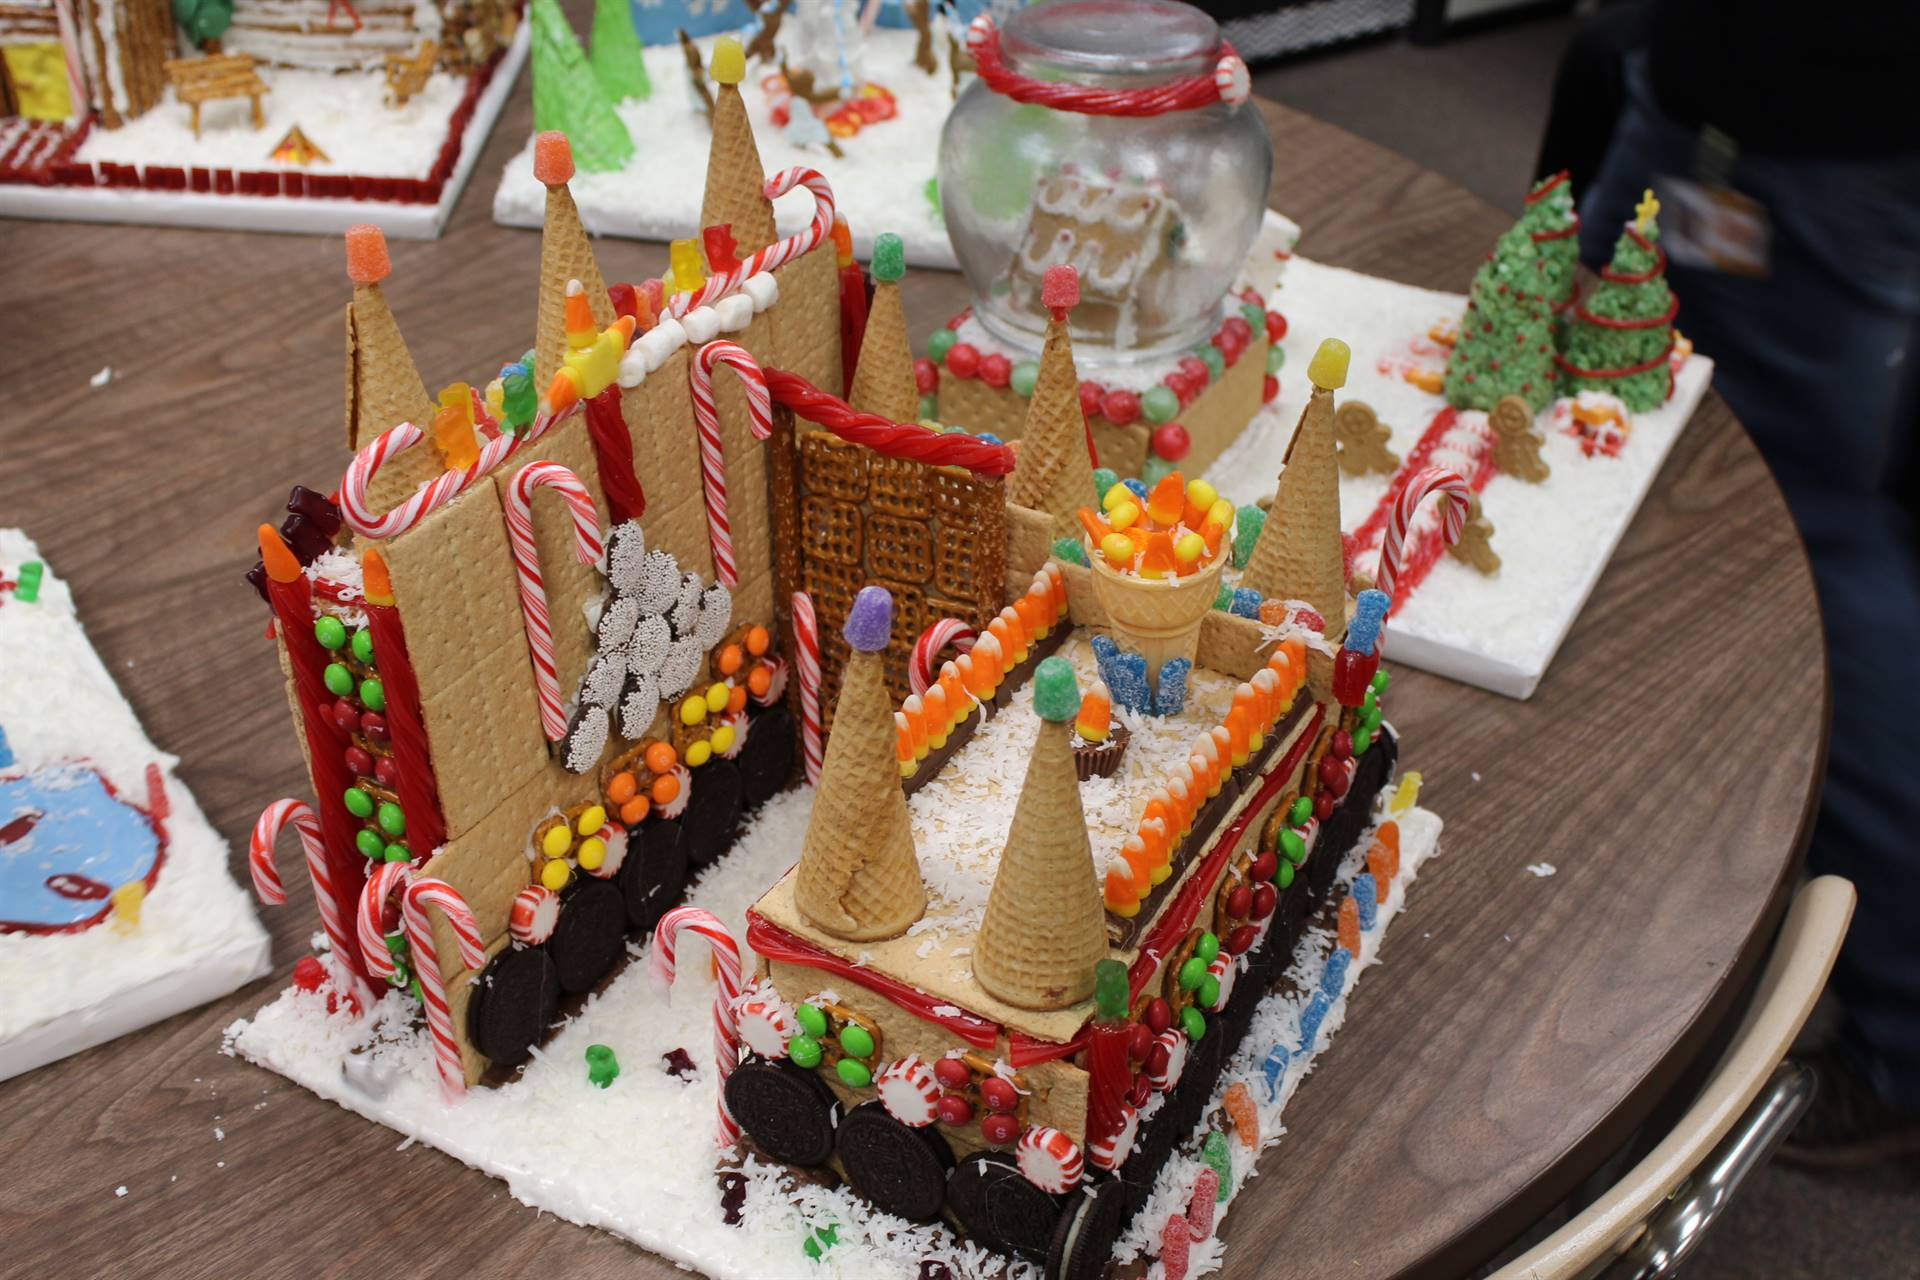 A gingerbread castle